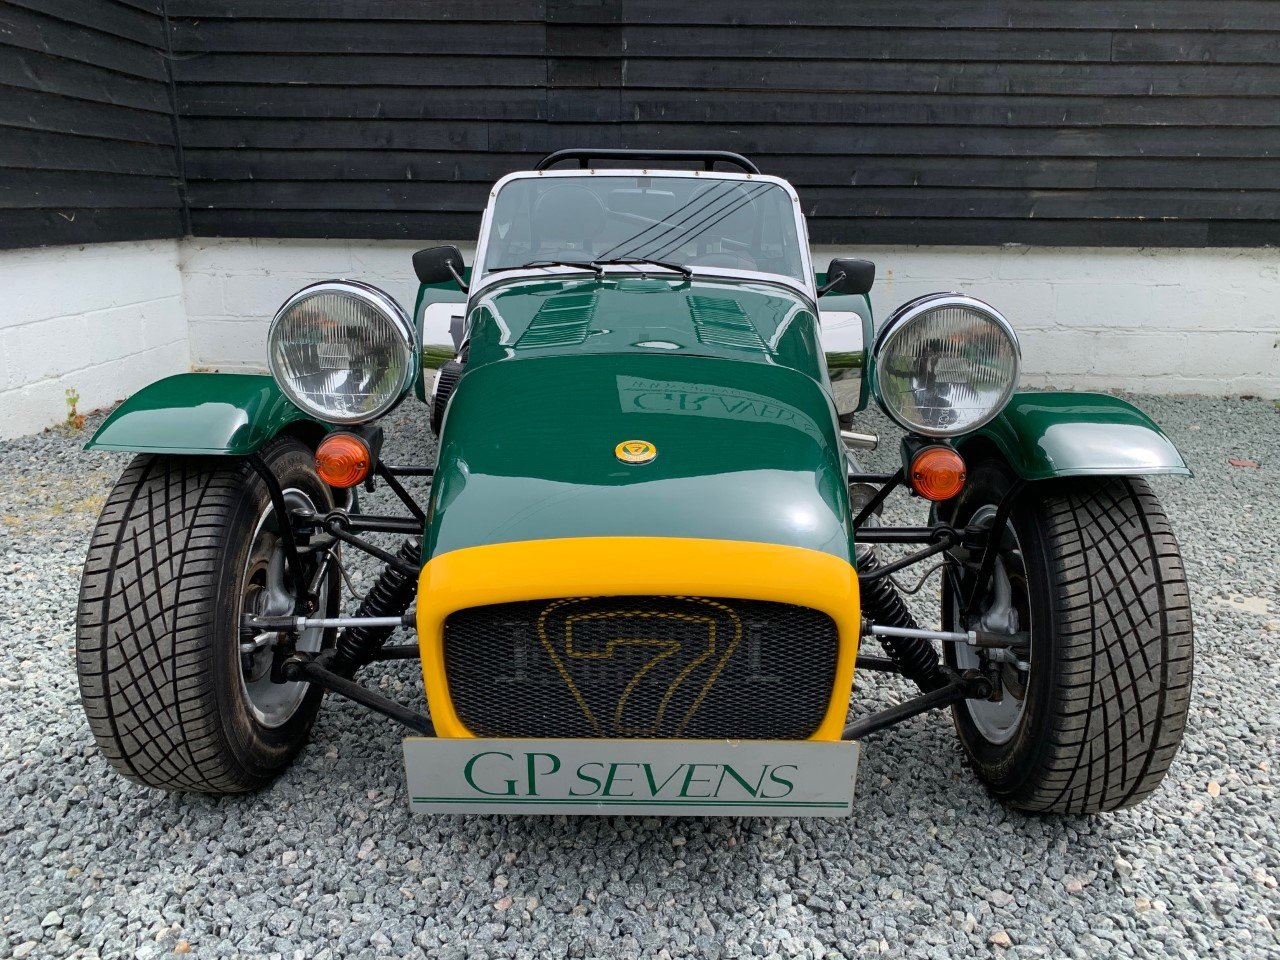 1998 Caterham Classic 1.6 Ford X Flow 100bhp 4 speed For Sale (picture 3 of 6)